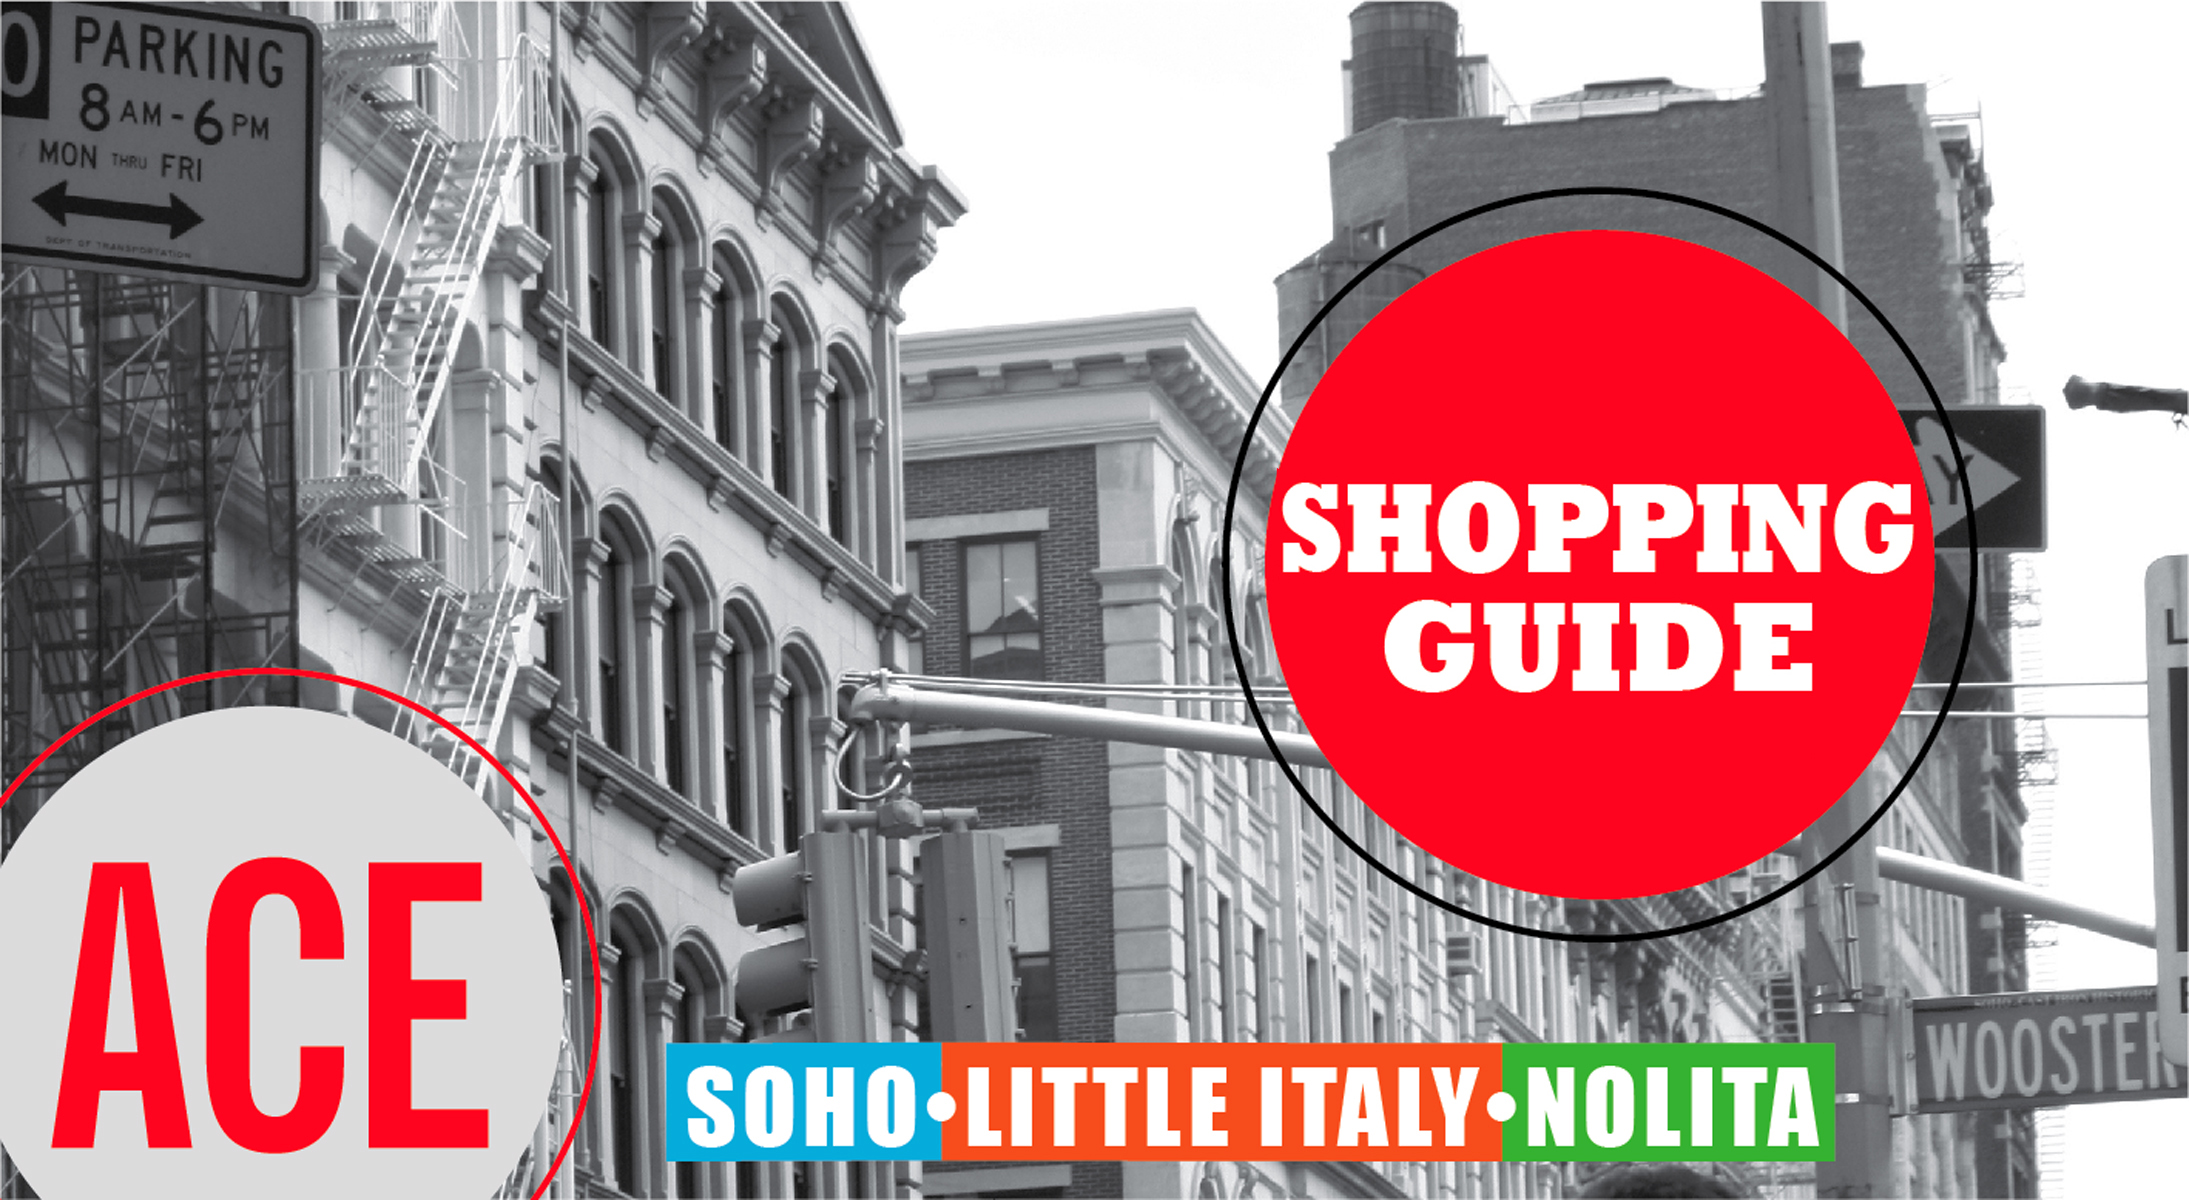 ACE's SoHo Shopping Guide